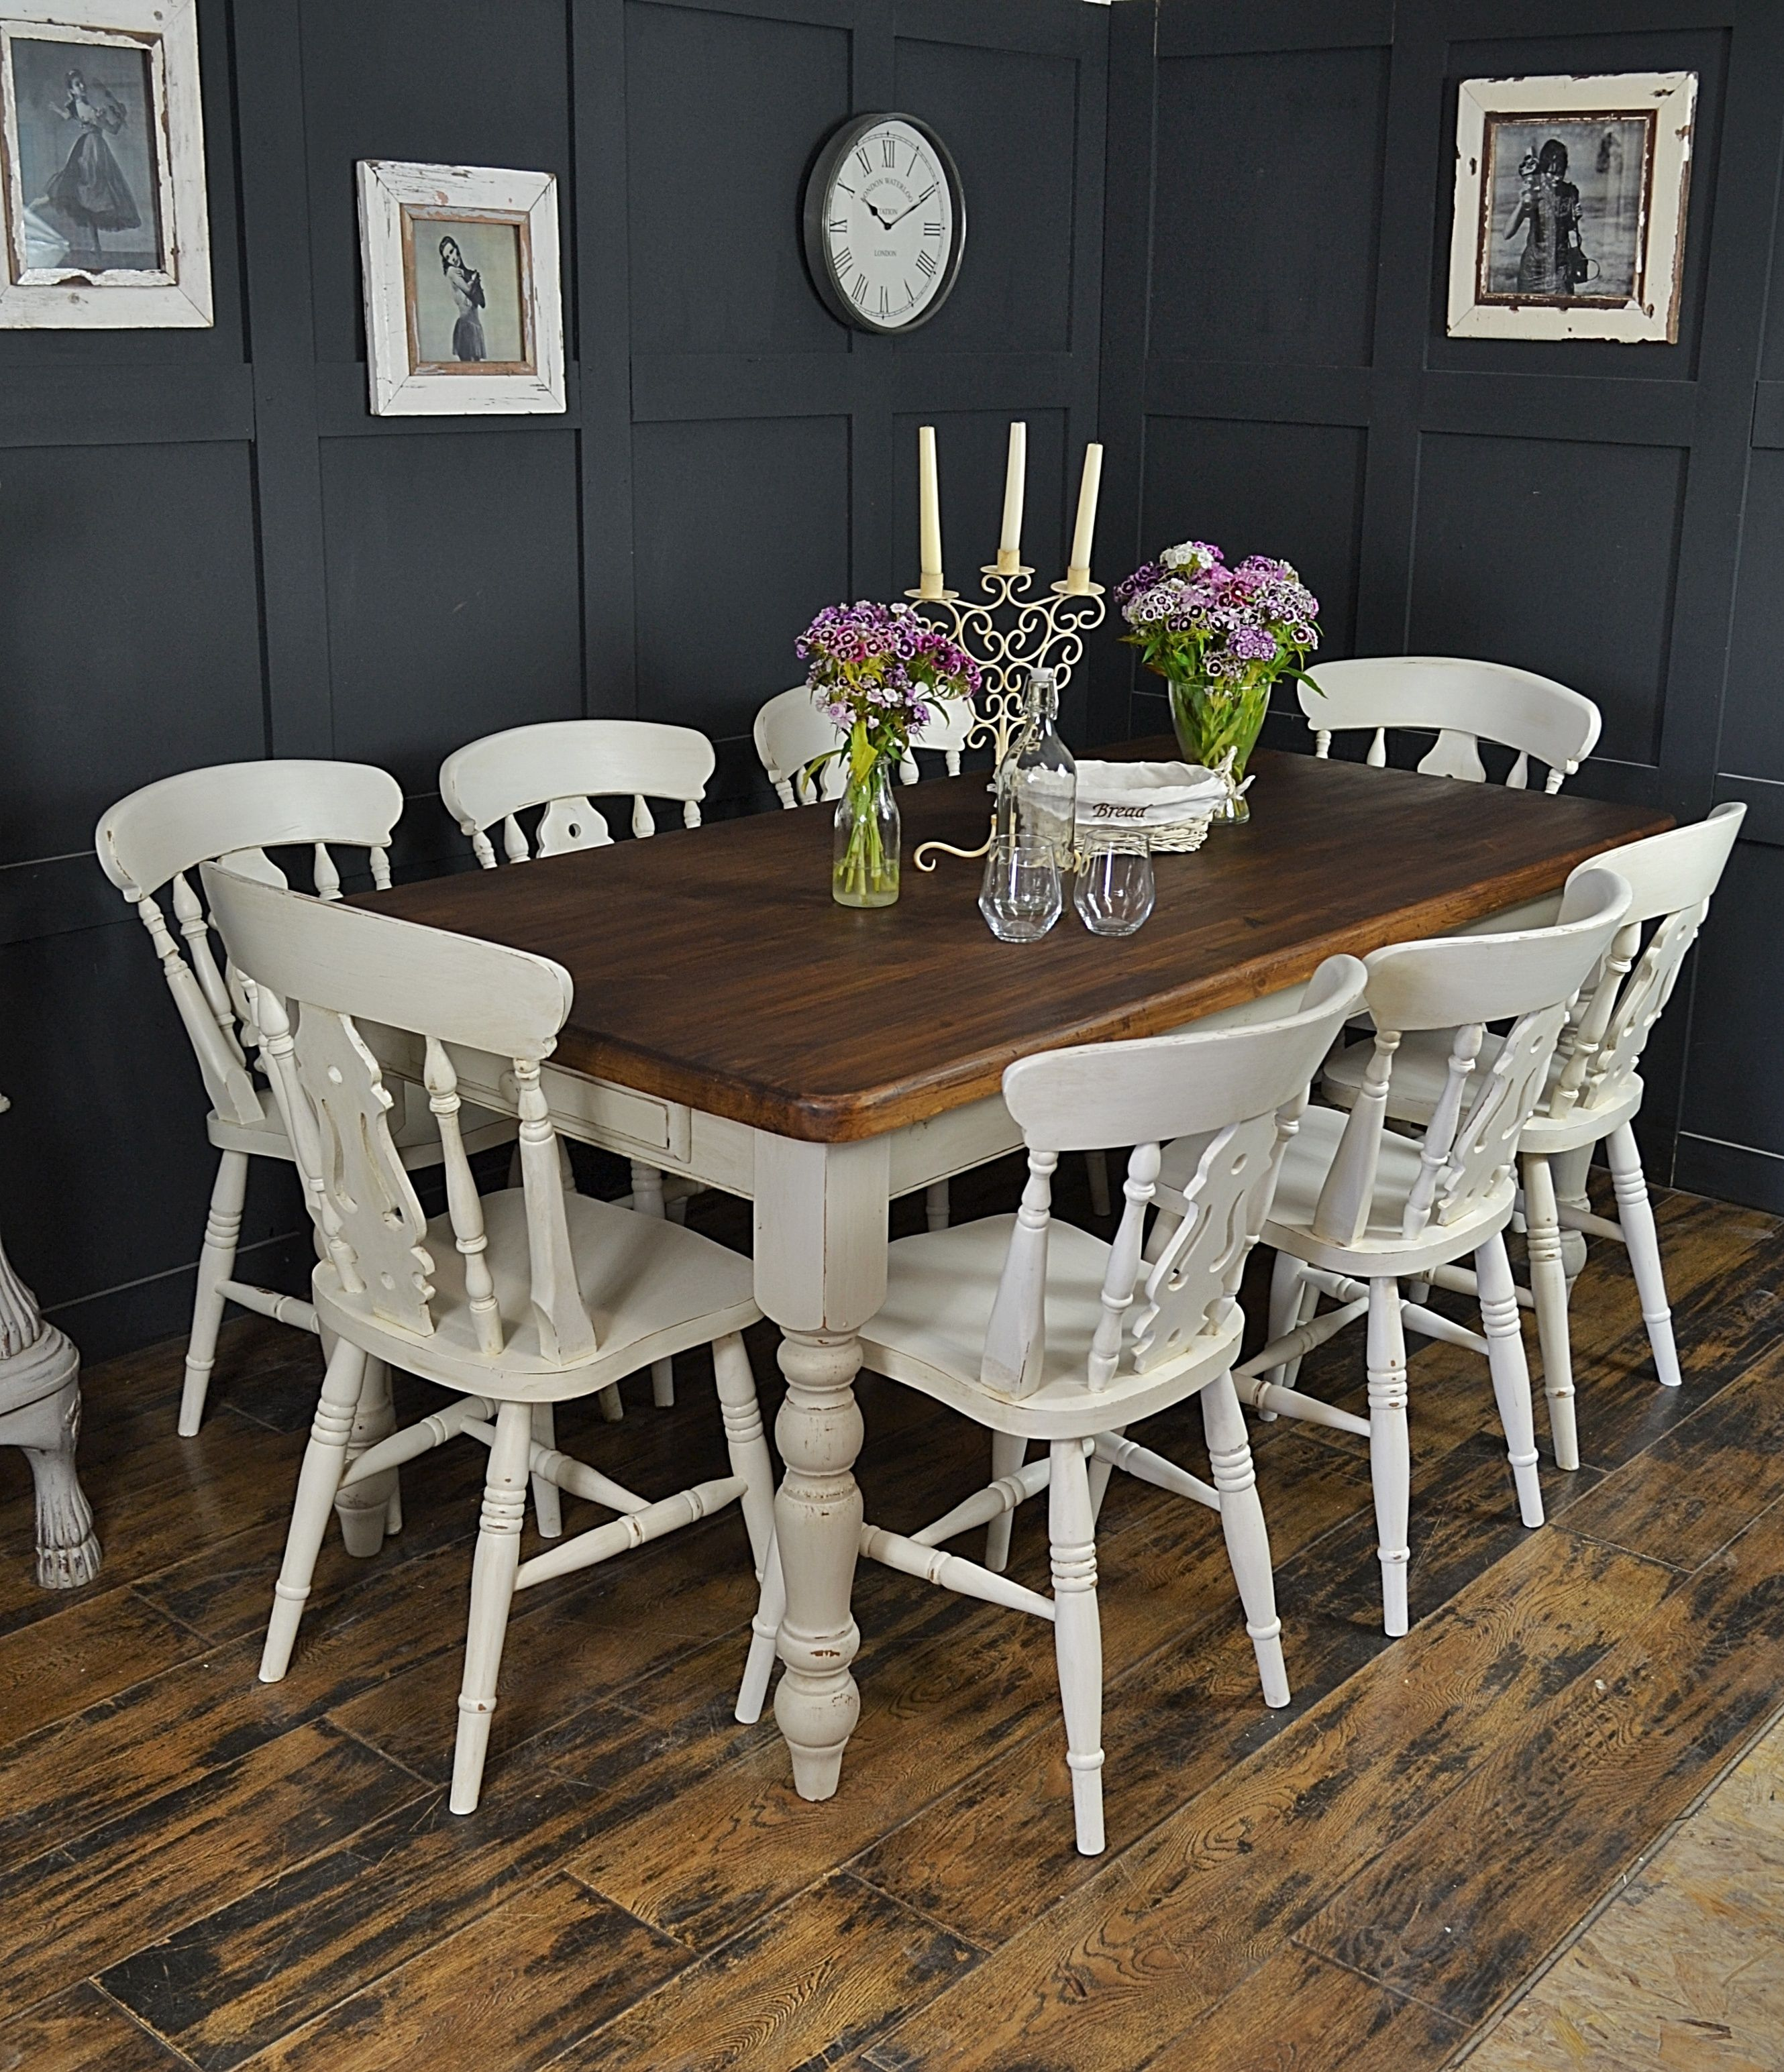 dine in style with our fabulous 8 seater farmhouse set painted in